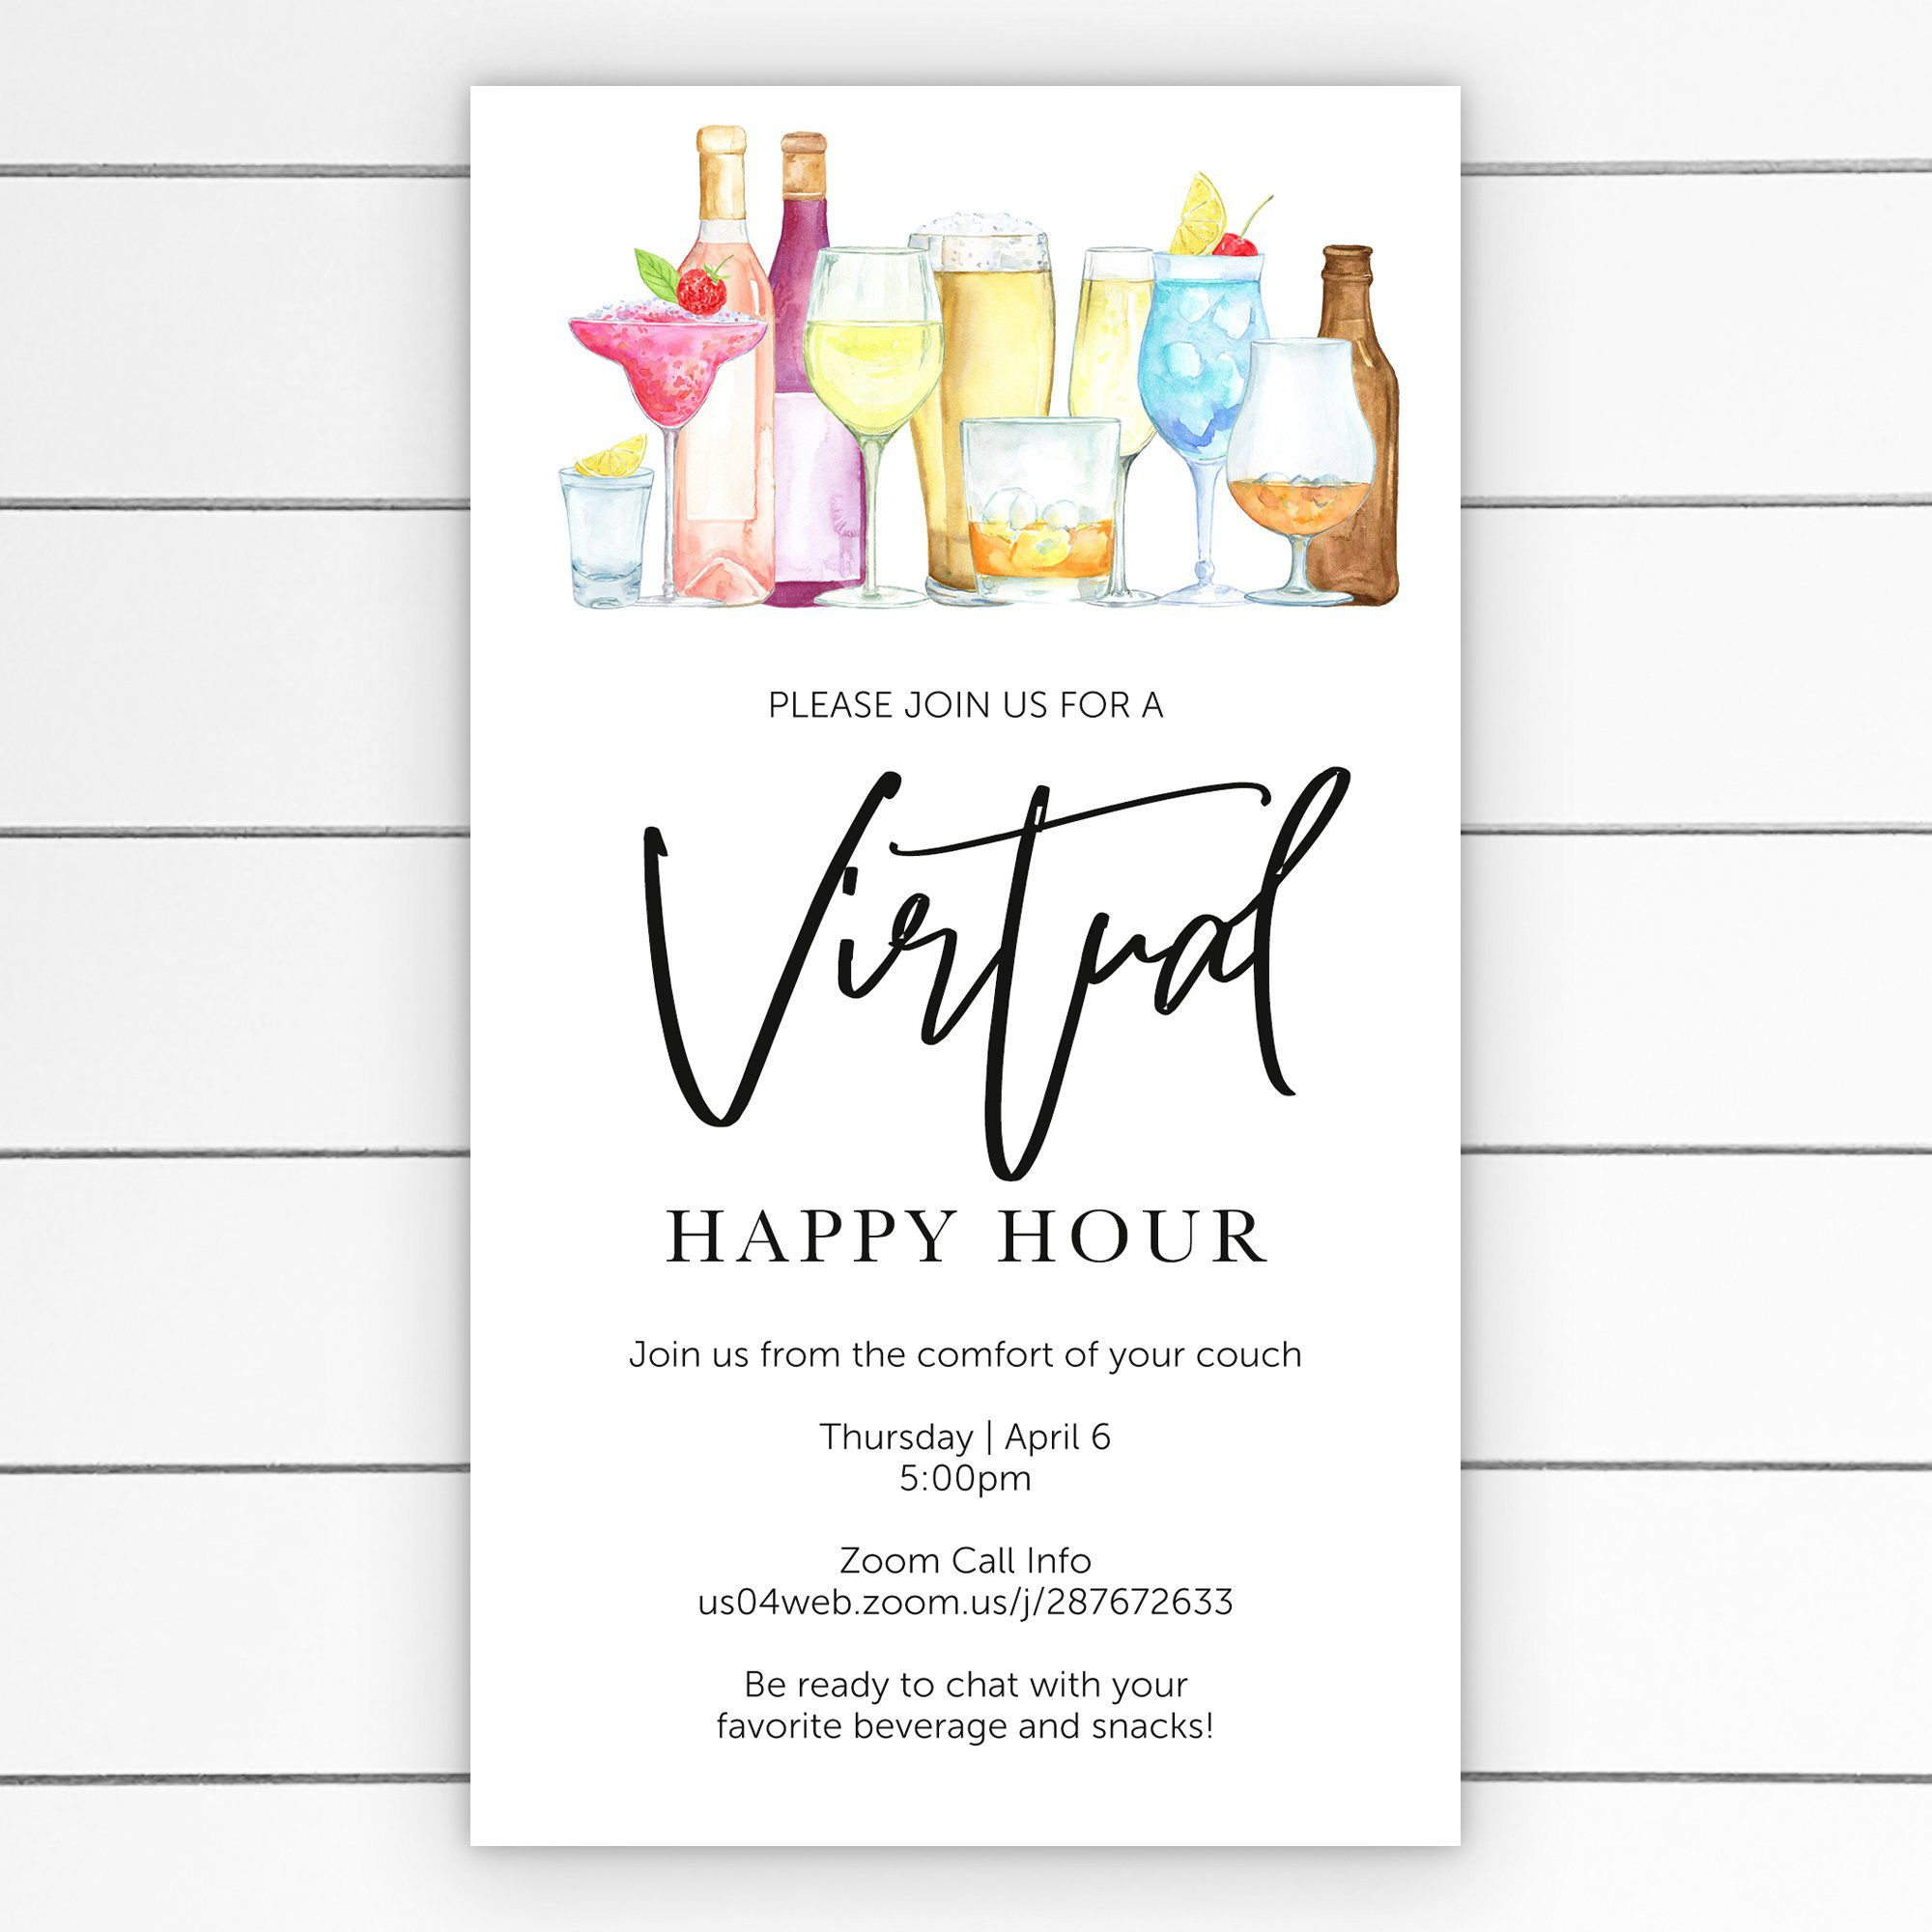 007 Unique Happy Hour Invitation Template Idea  Templates Free Word FarewellFull